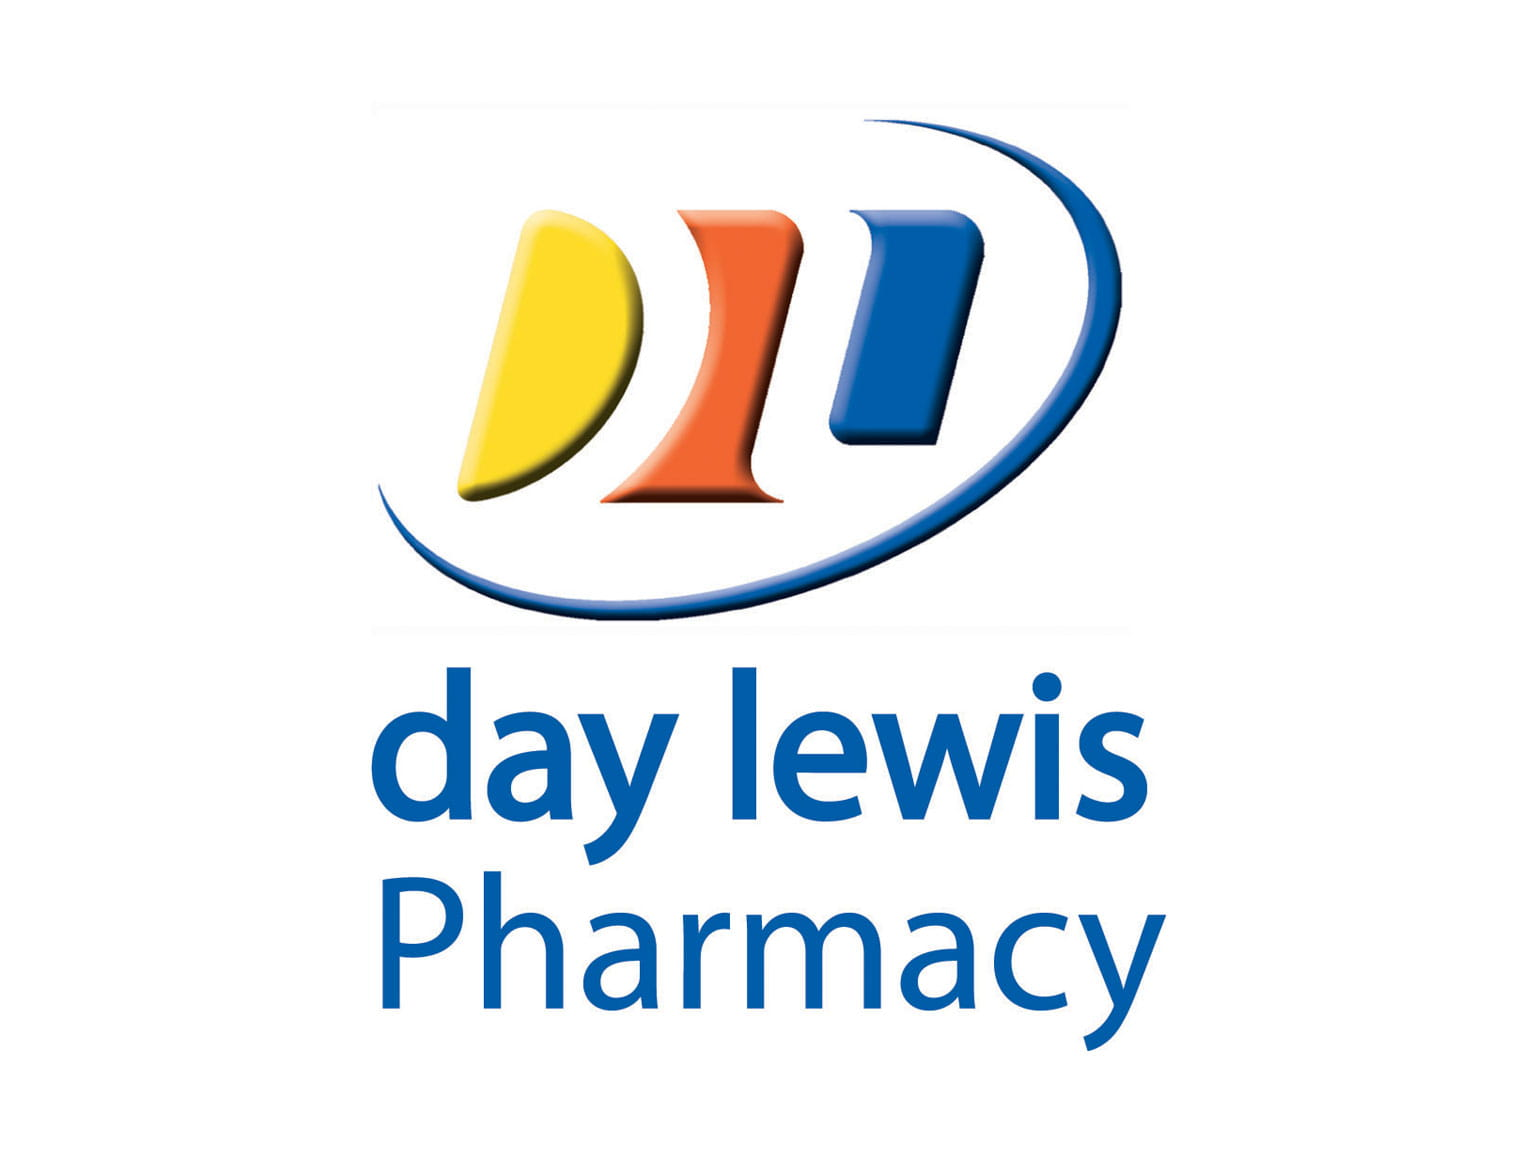 case studies study day lewis pharmacy healthcare